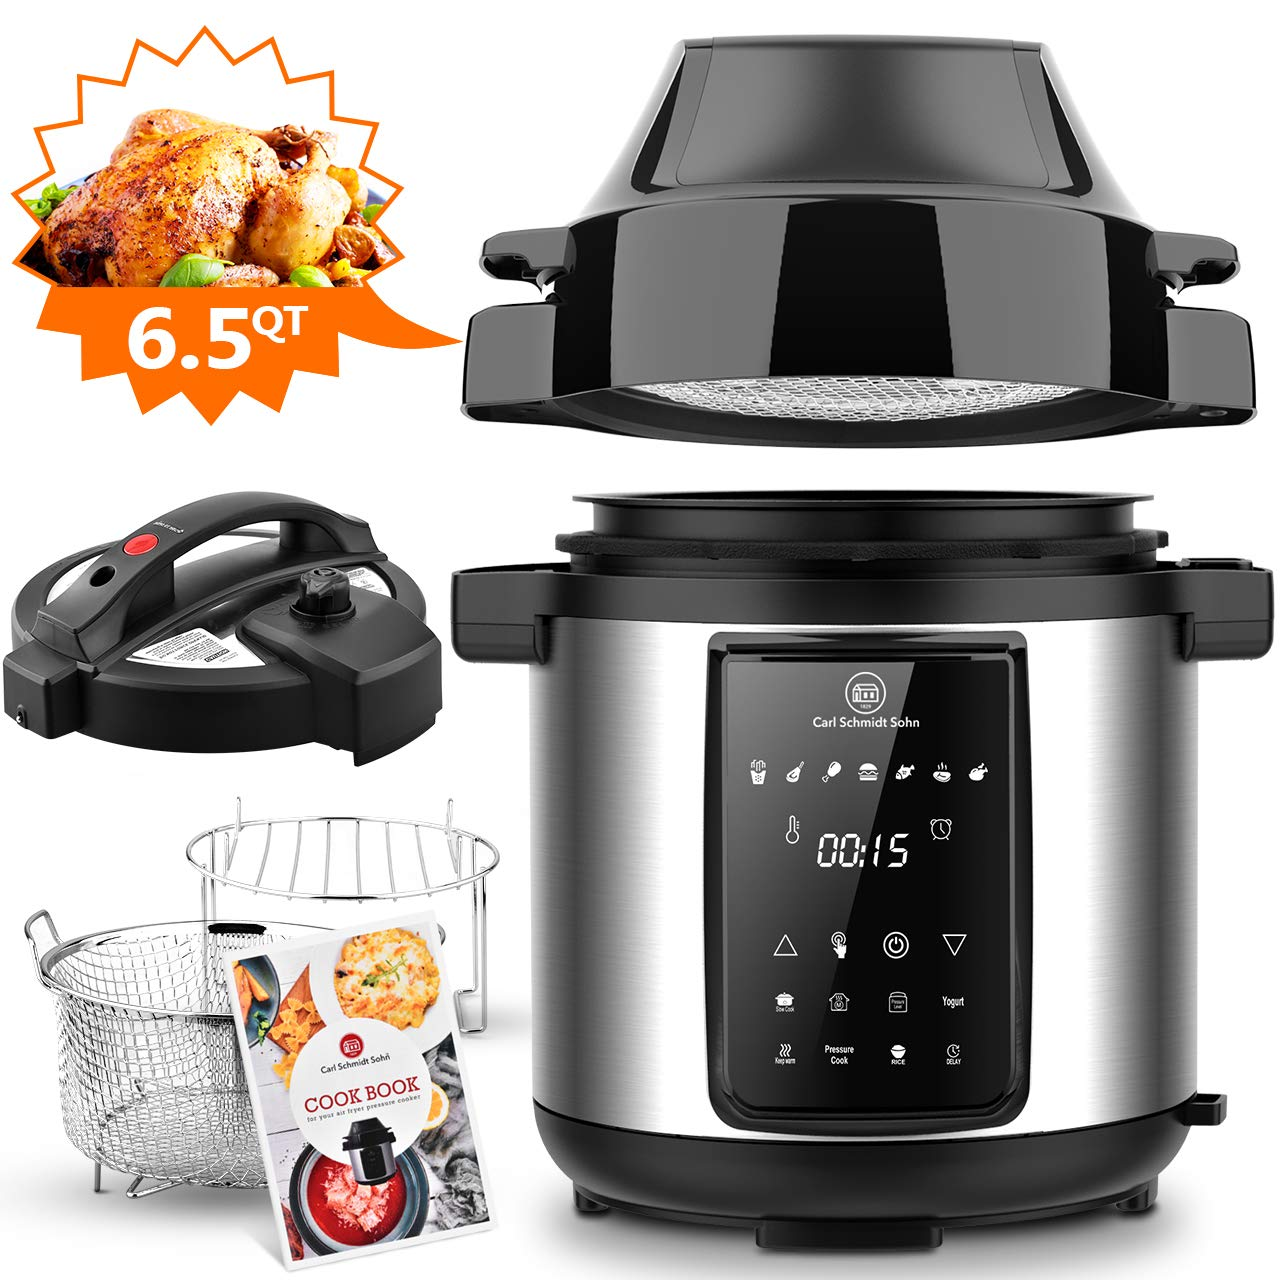 6.5Qt Pressure Cooker and Air Fryer Combos, 1500W Pressure, Steamer Cooker, Air Fryer All-in-One Multi-Cooker with LED Touchscreen Display, 3-Qt Air Fry Basket, Pressure & Crisper Lid, Free Recipe Book